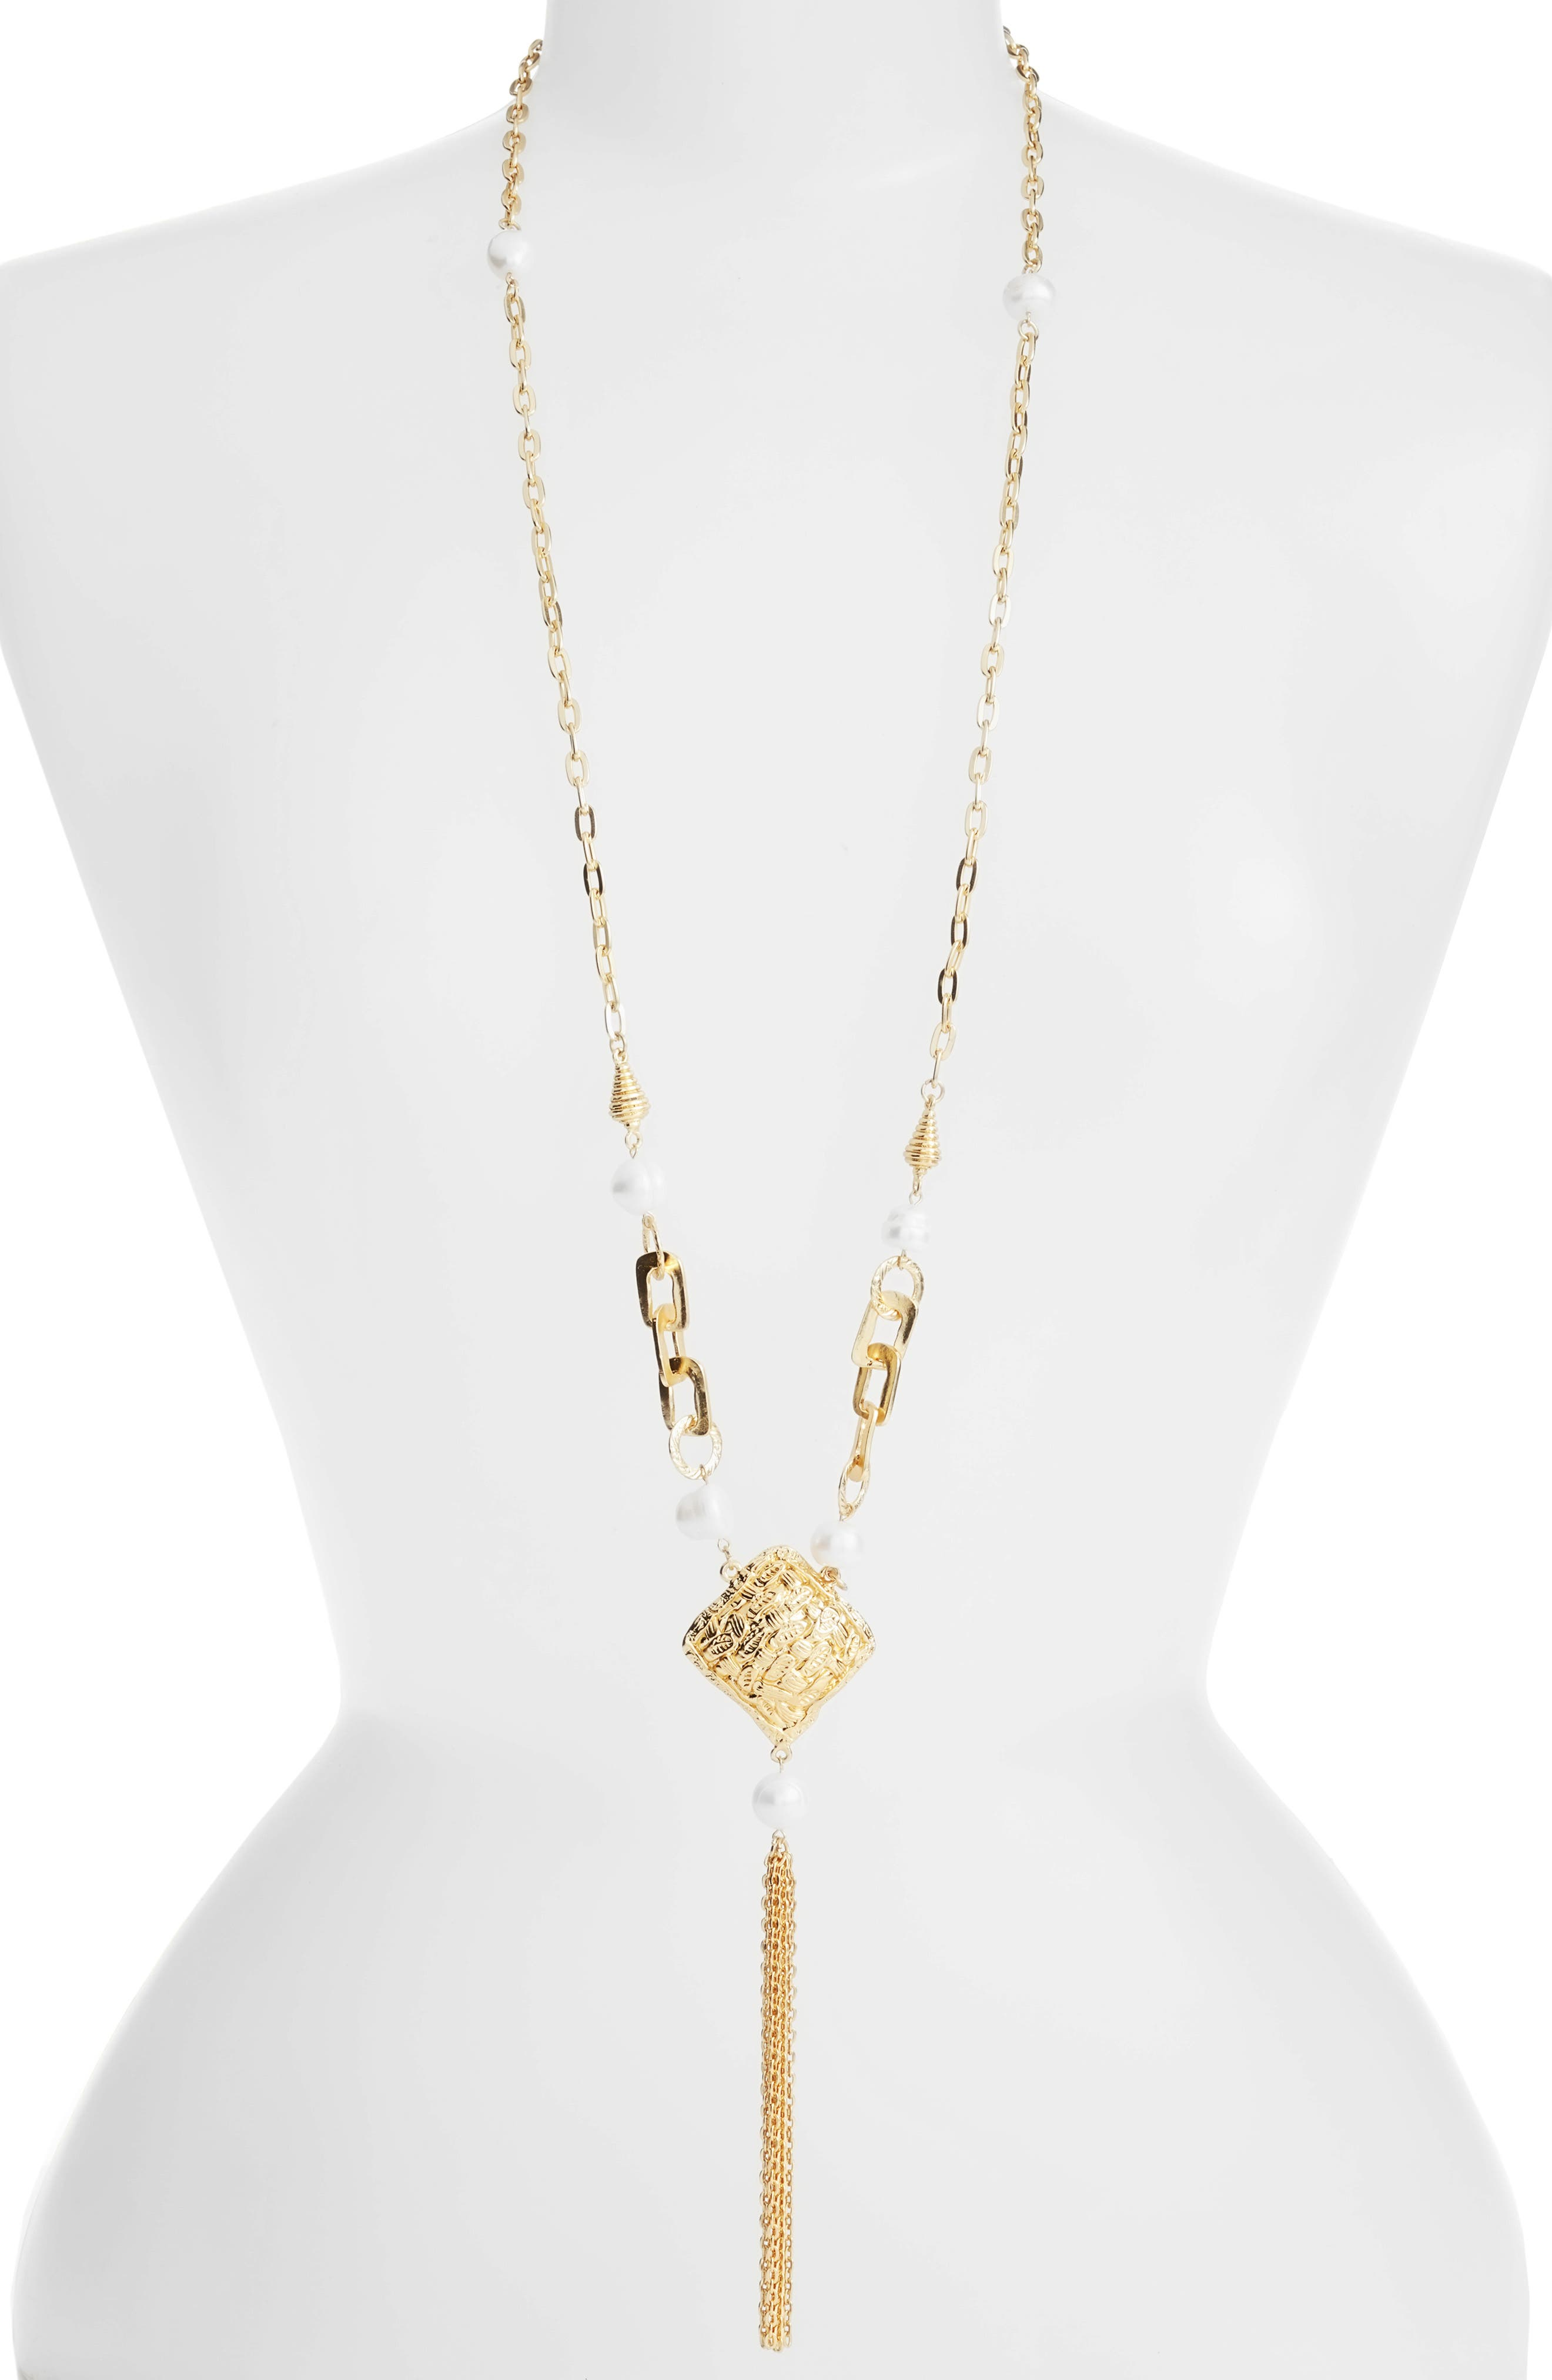 Karine Sultan Long Y-Necklace